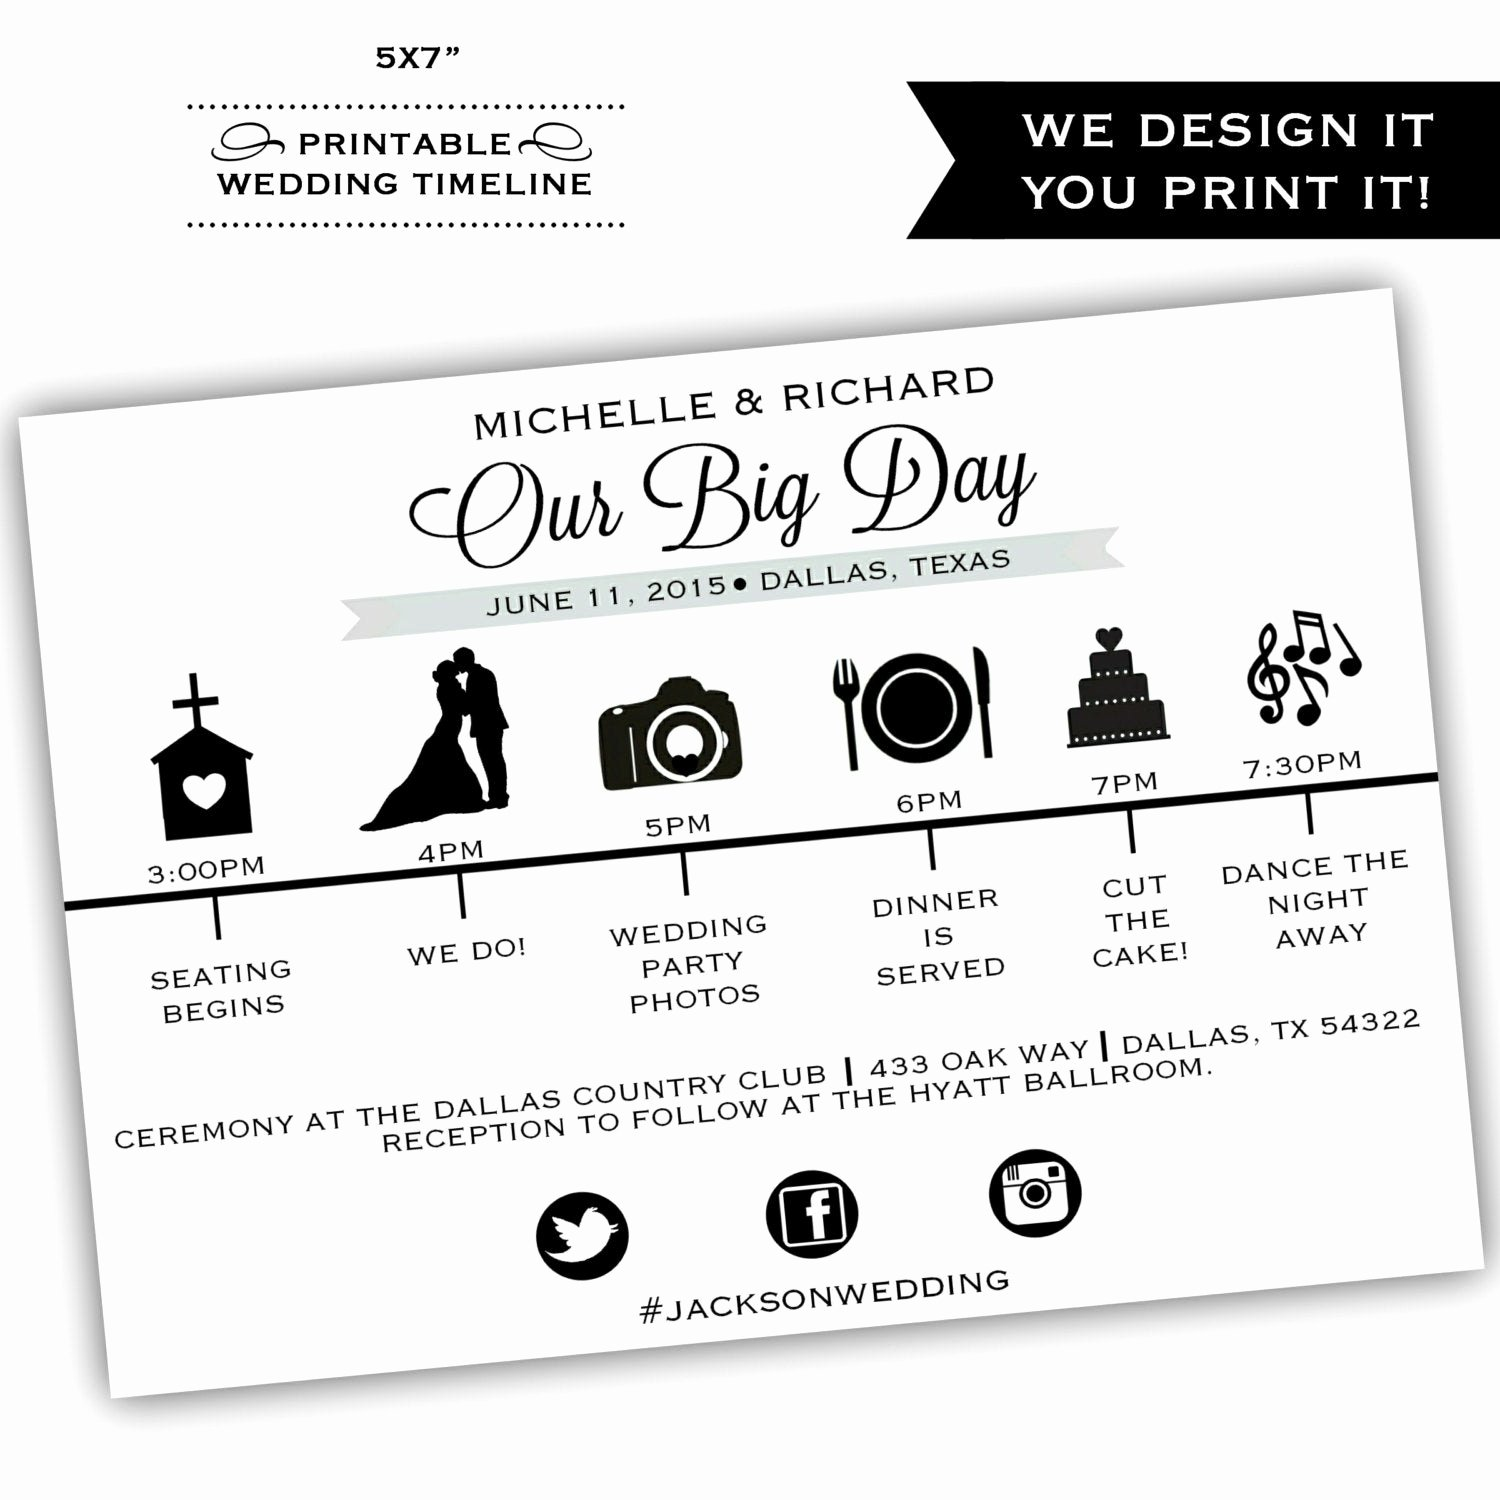 Wedding Day Timeline Printable Unique Printable Wedding Timeline Printable by Classyprints Line